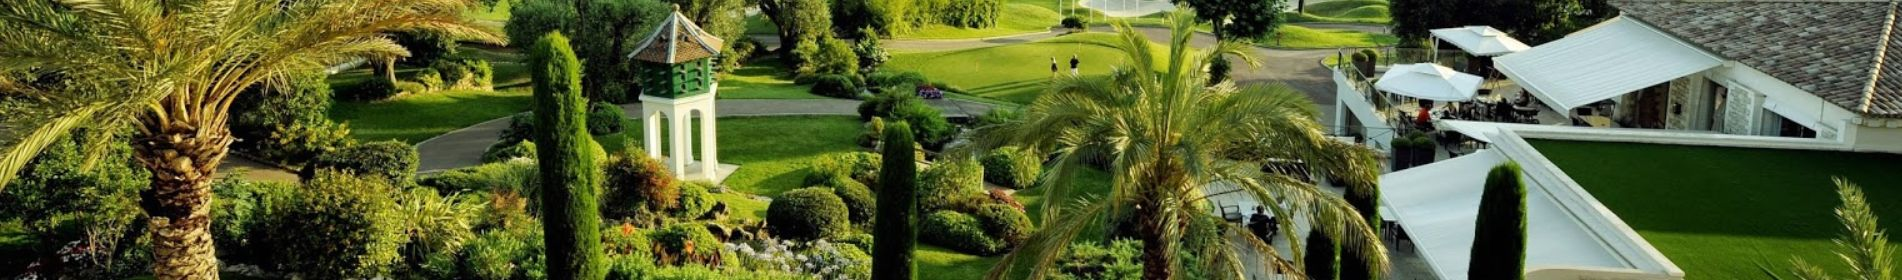 Royal mougins golf & resort à Mougins